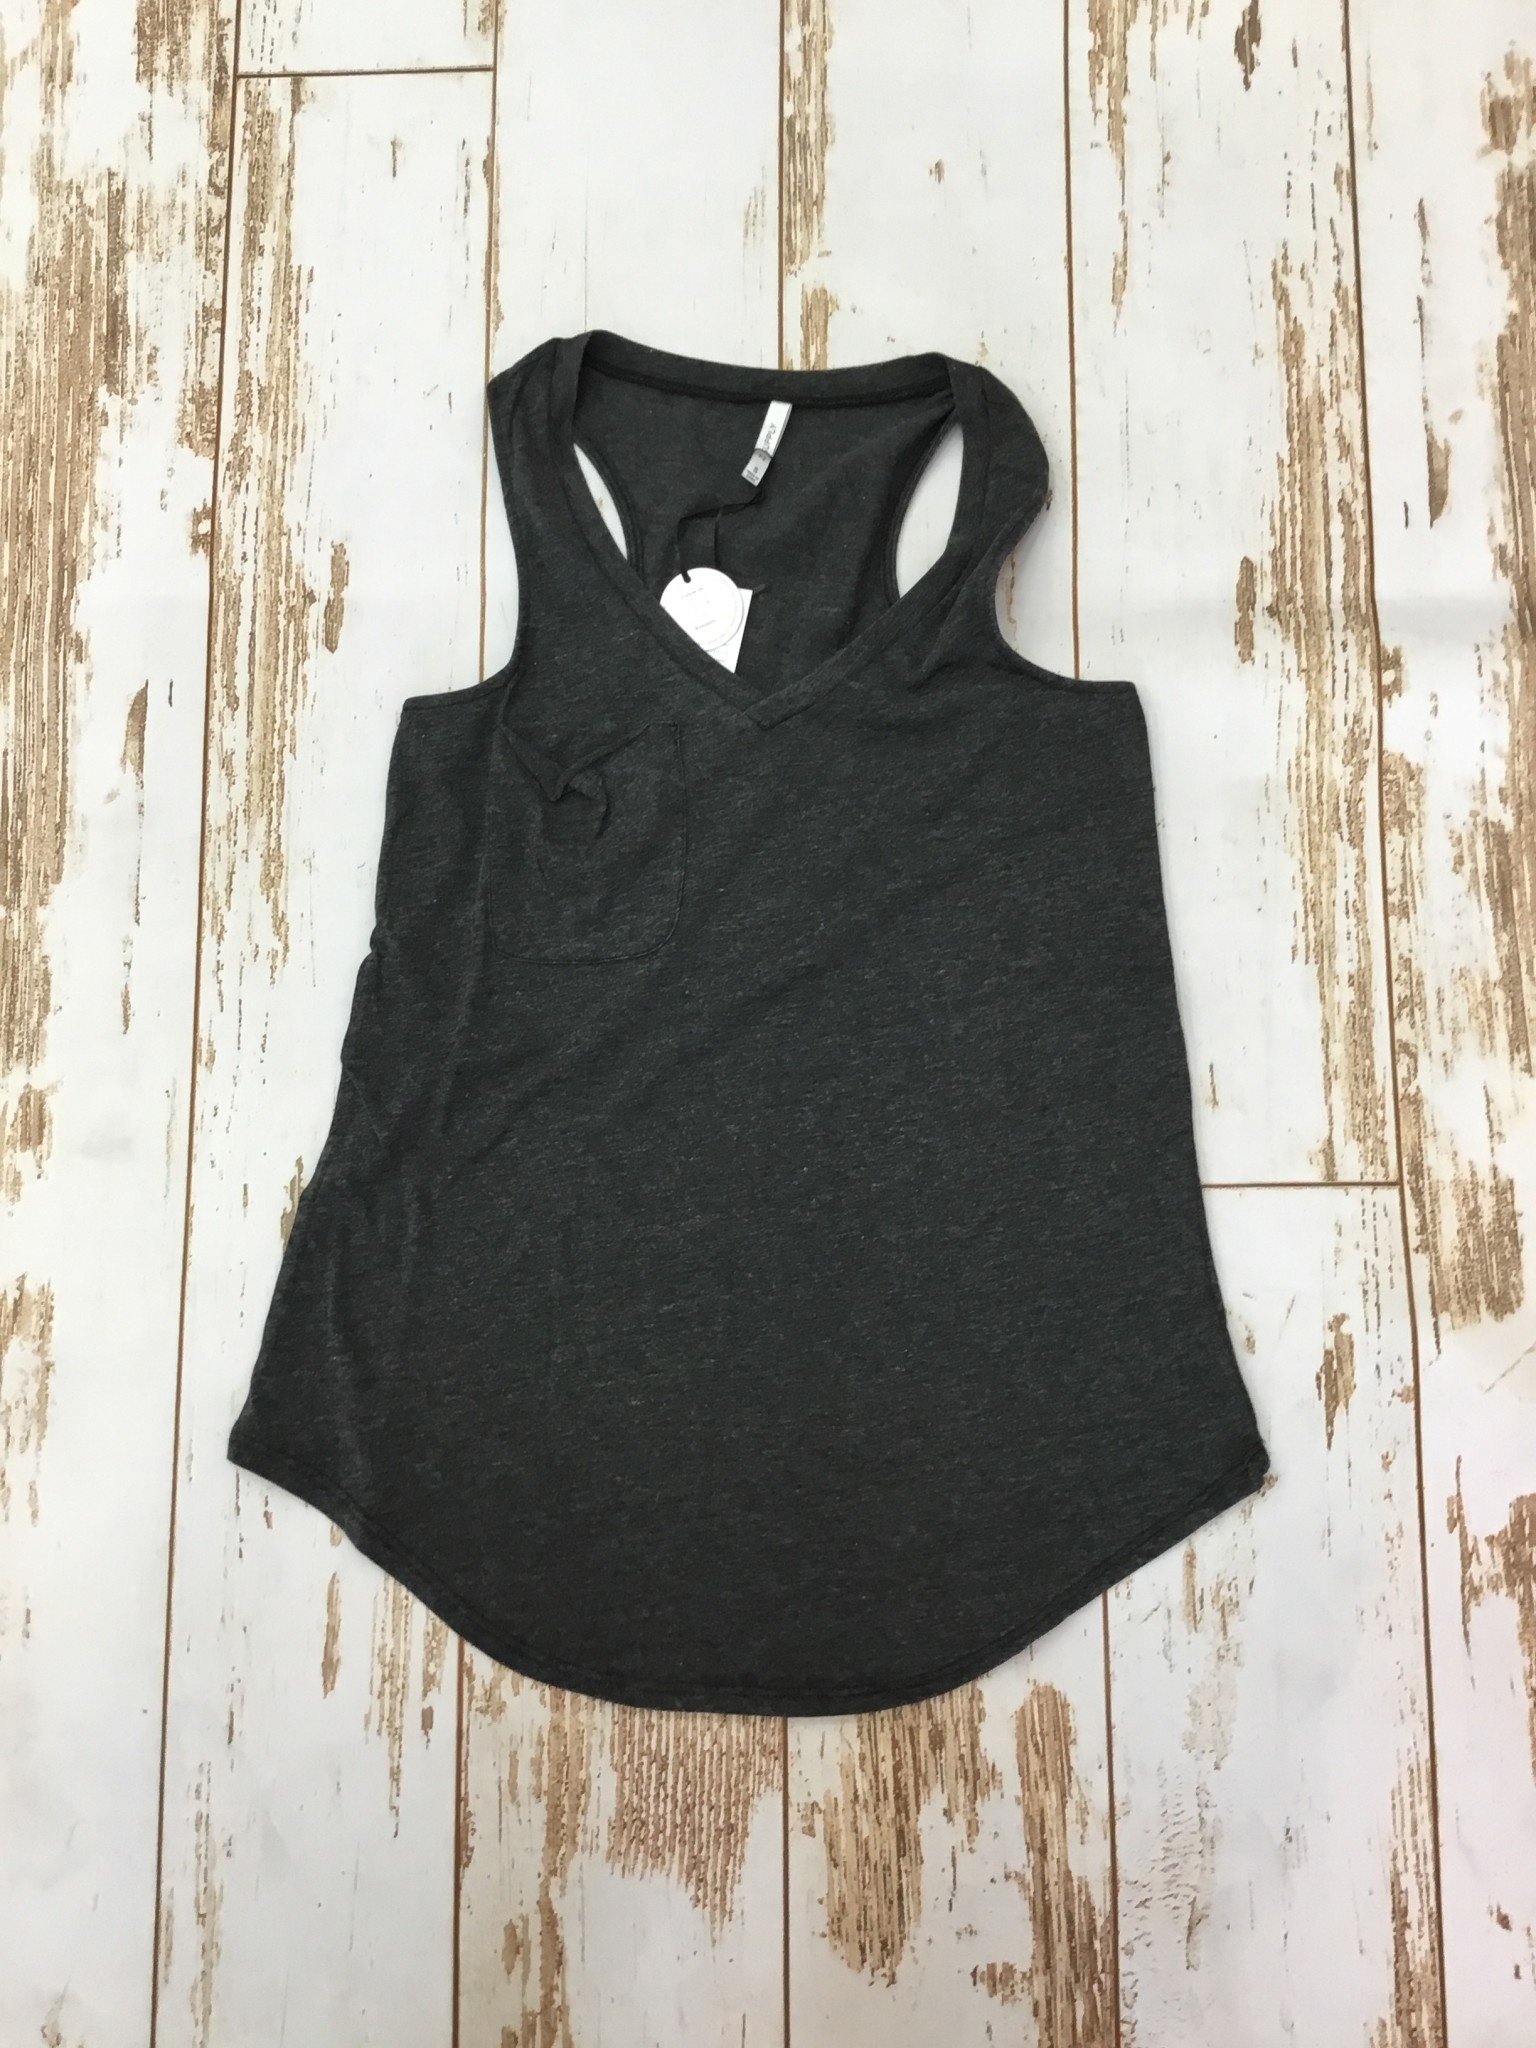 ZSupply The Pocket Racer Tank in Black